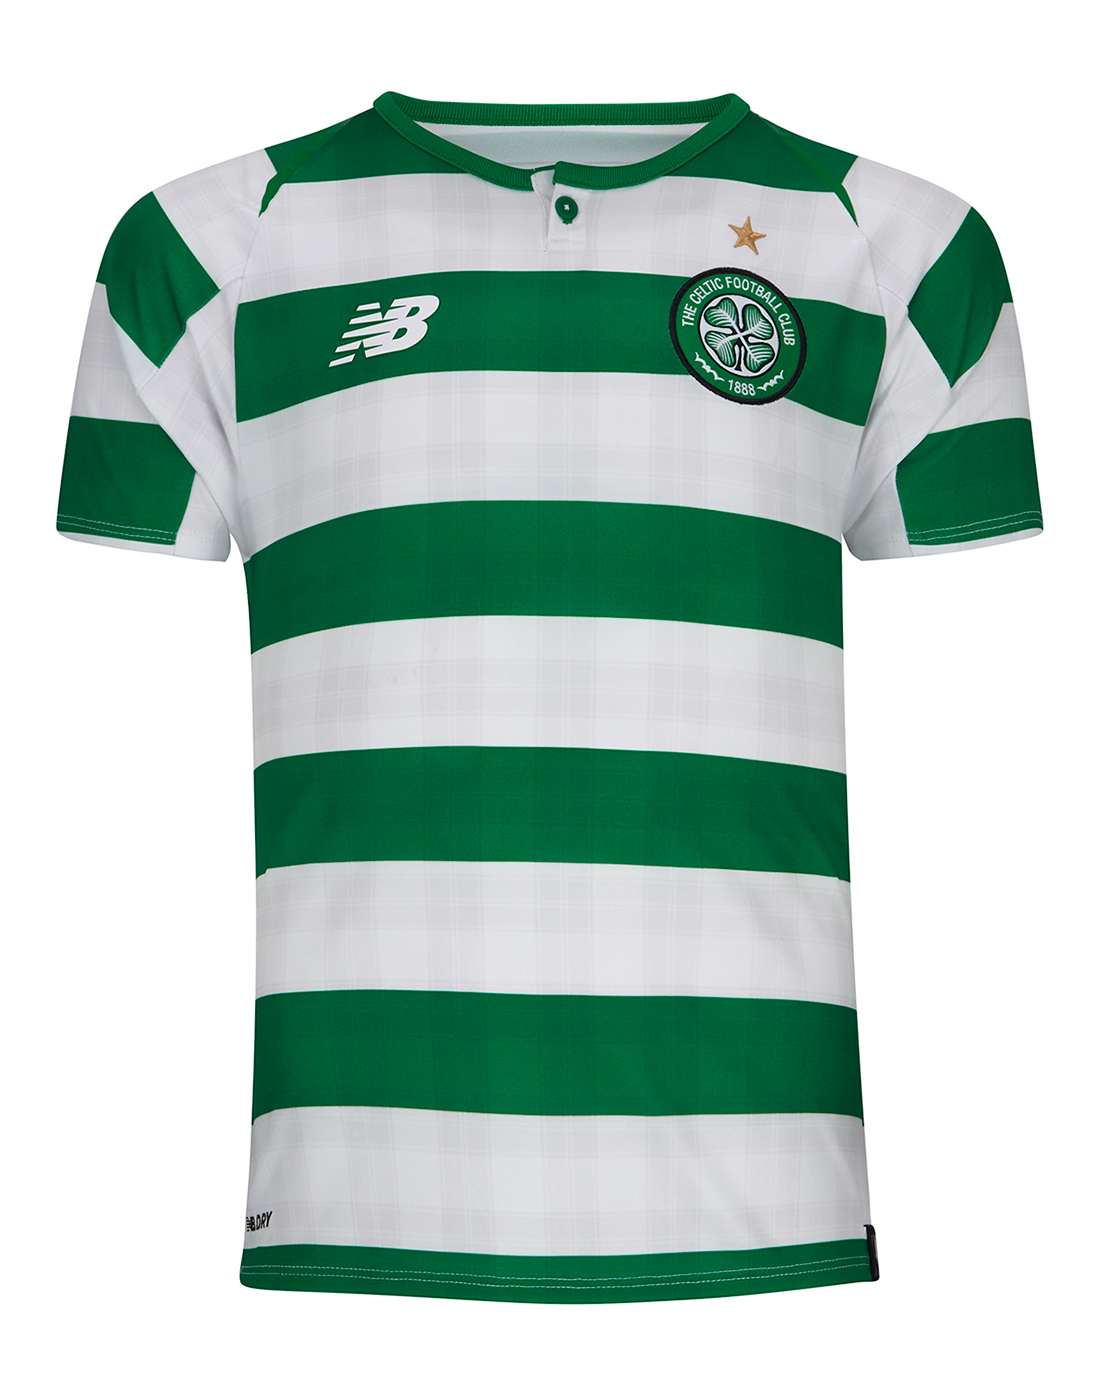 5304f115185 Kids Celtic 2018/19 Home Jersey | Life Style Sports